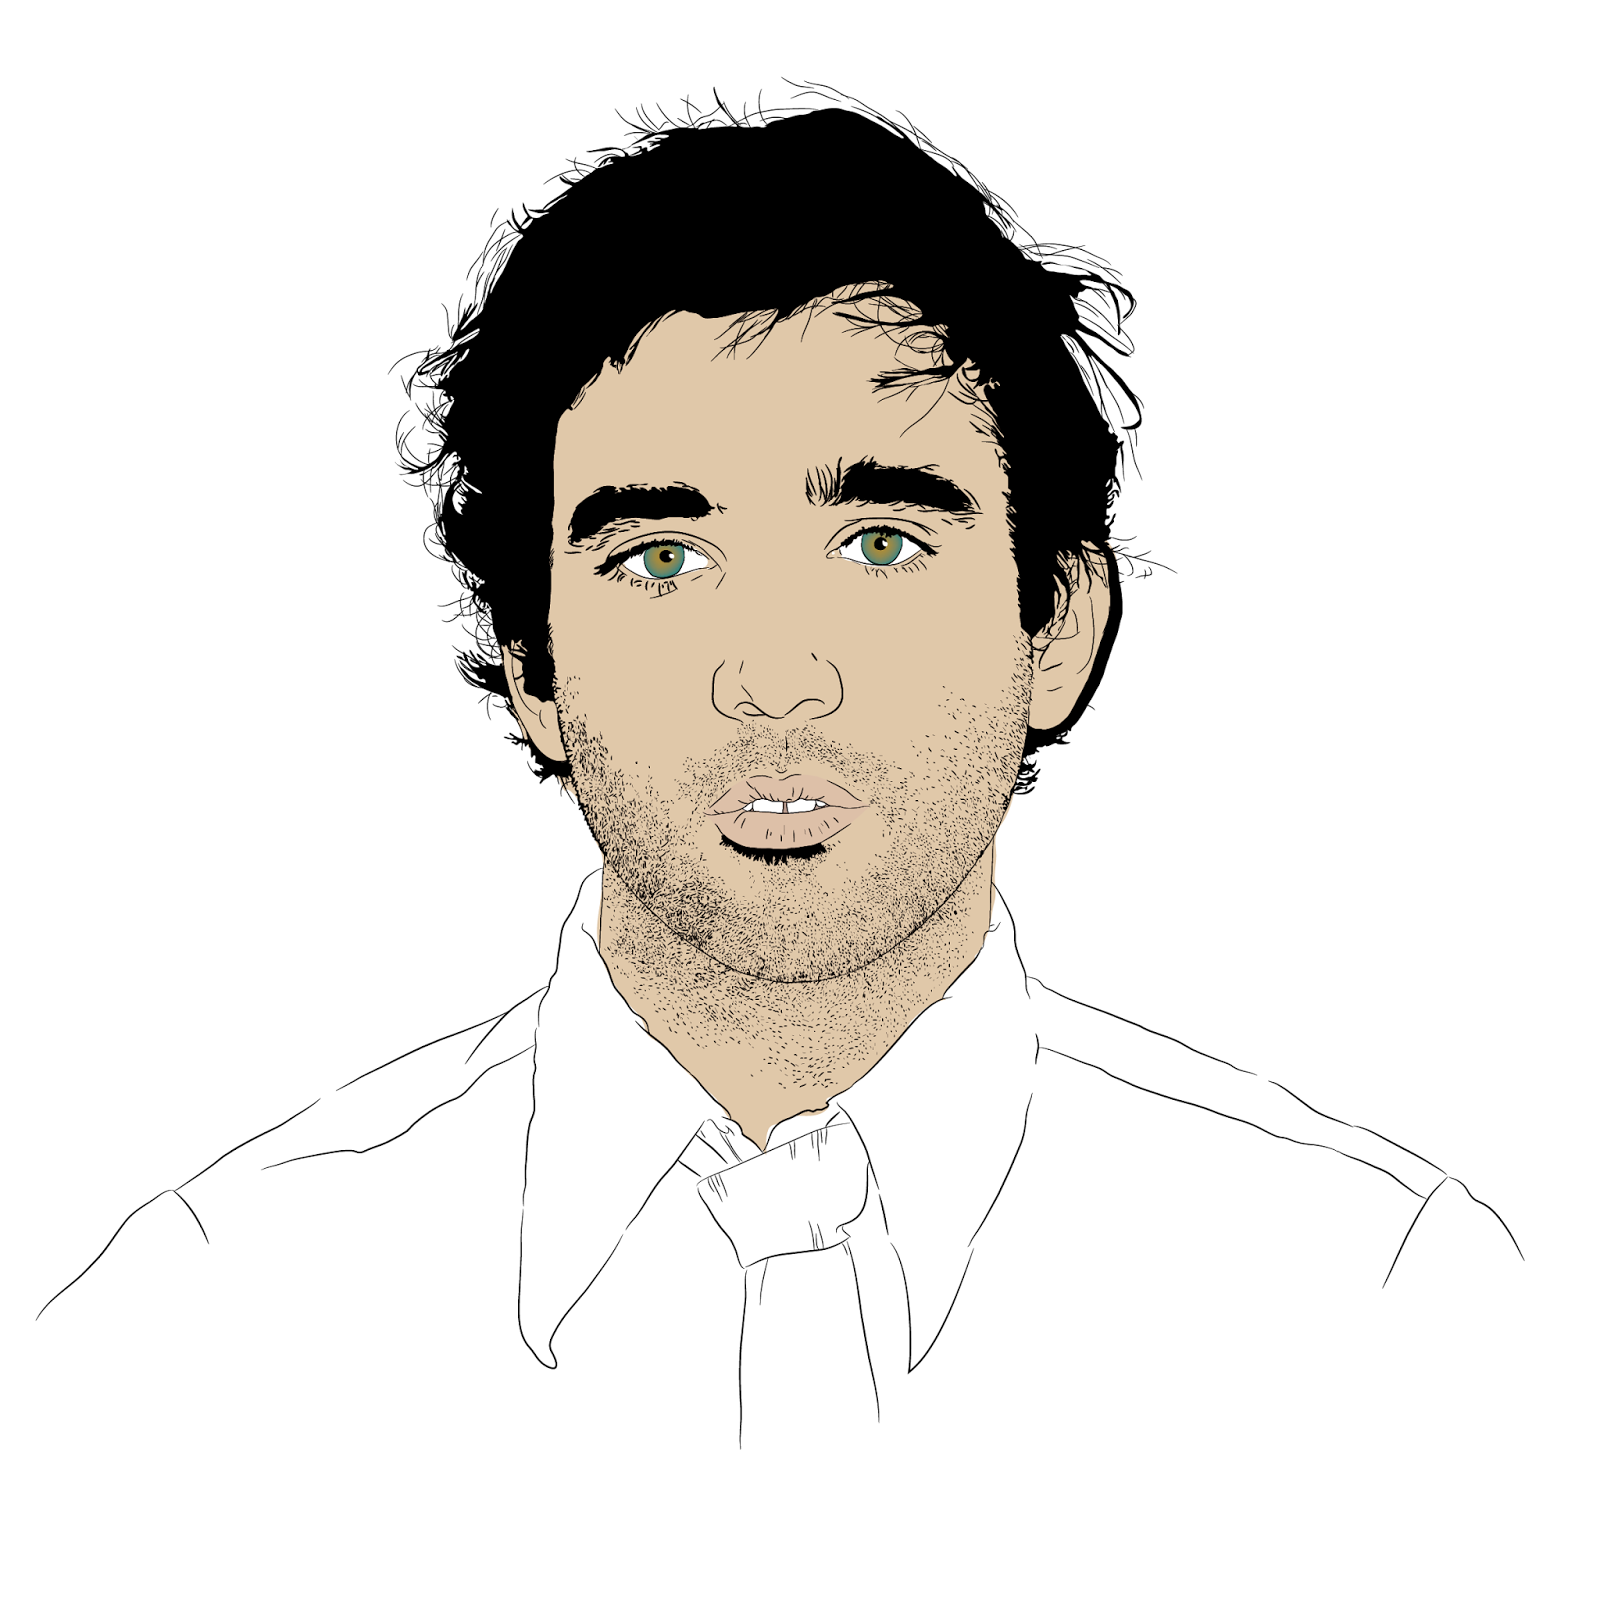 sufjan-stephens, sufjan-stevens-drawing, sufjan-stevens-illustration, sufjan-stevens-portrait, sufjan-stevens-carrie-and-lowell